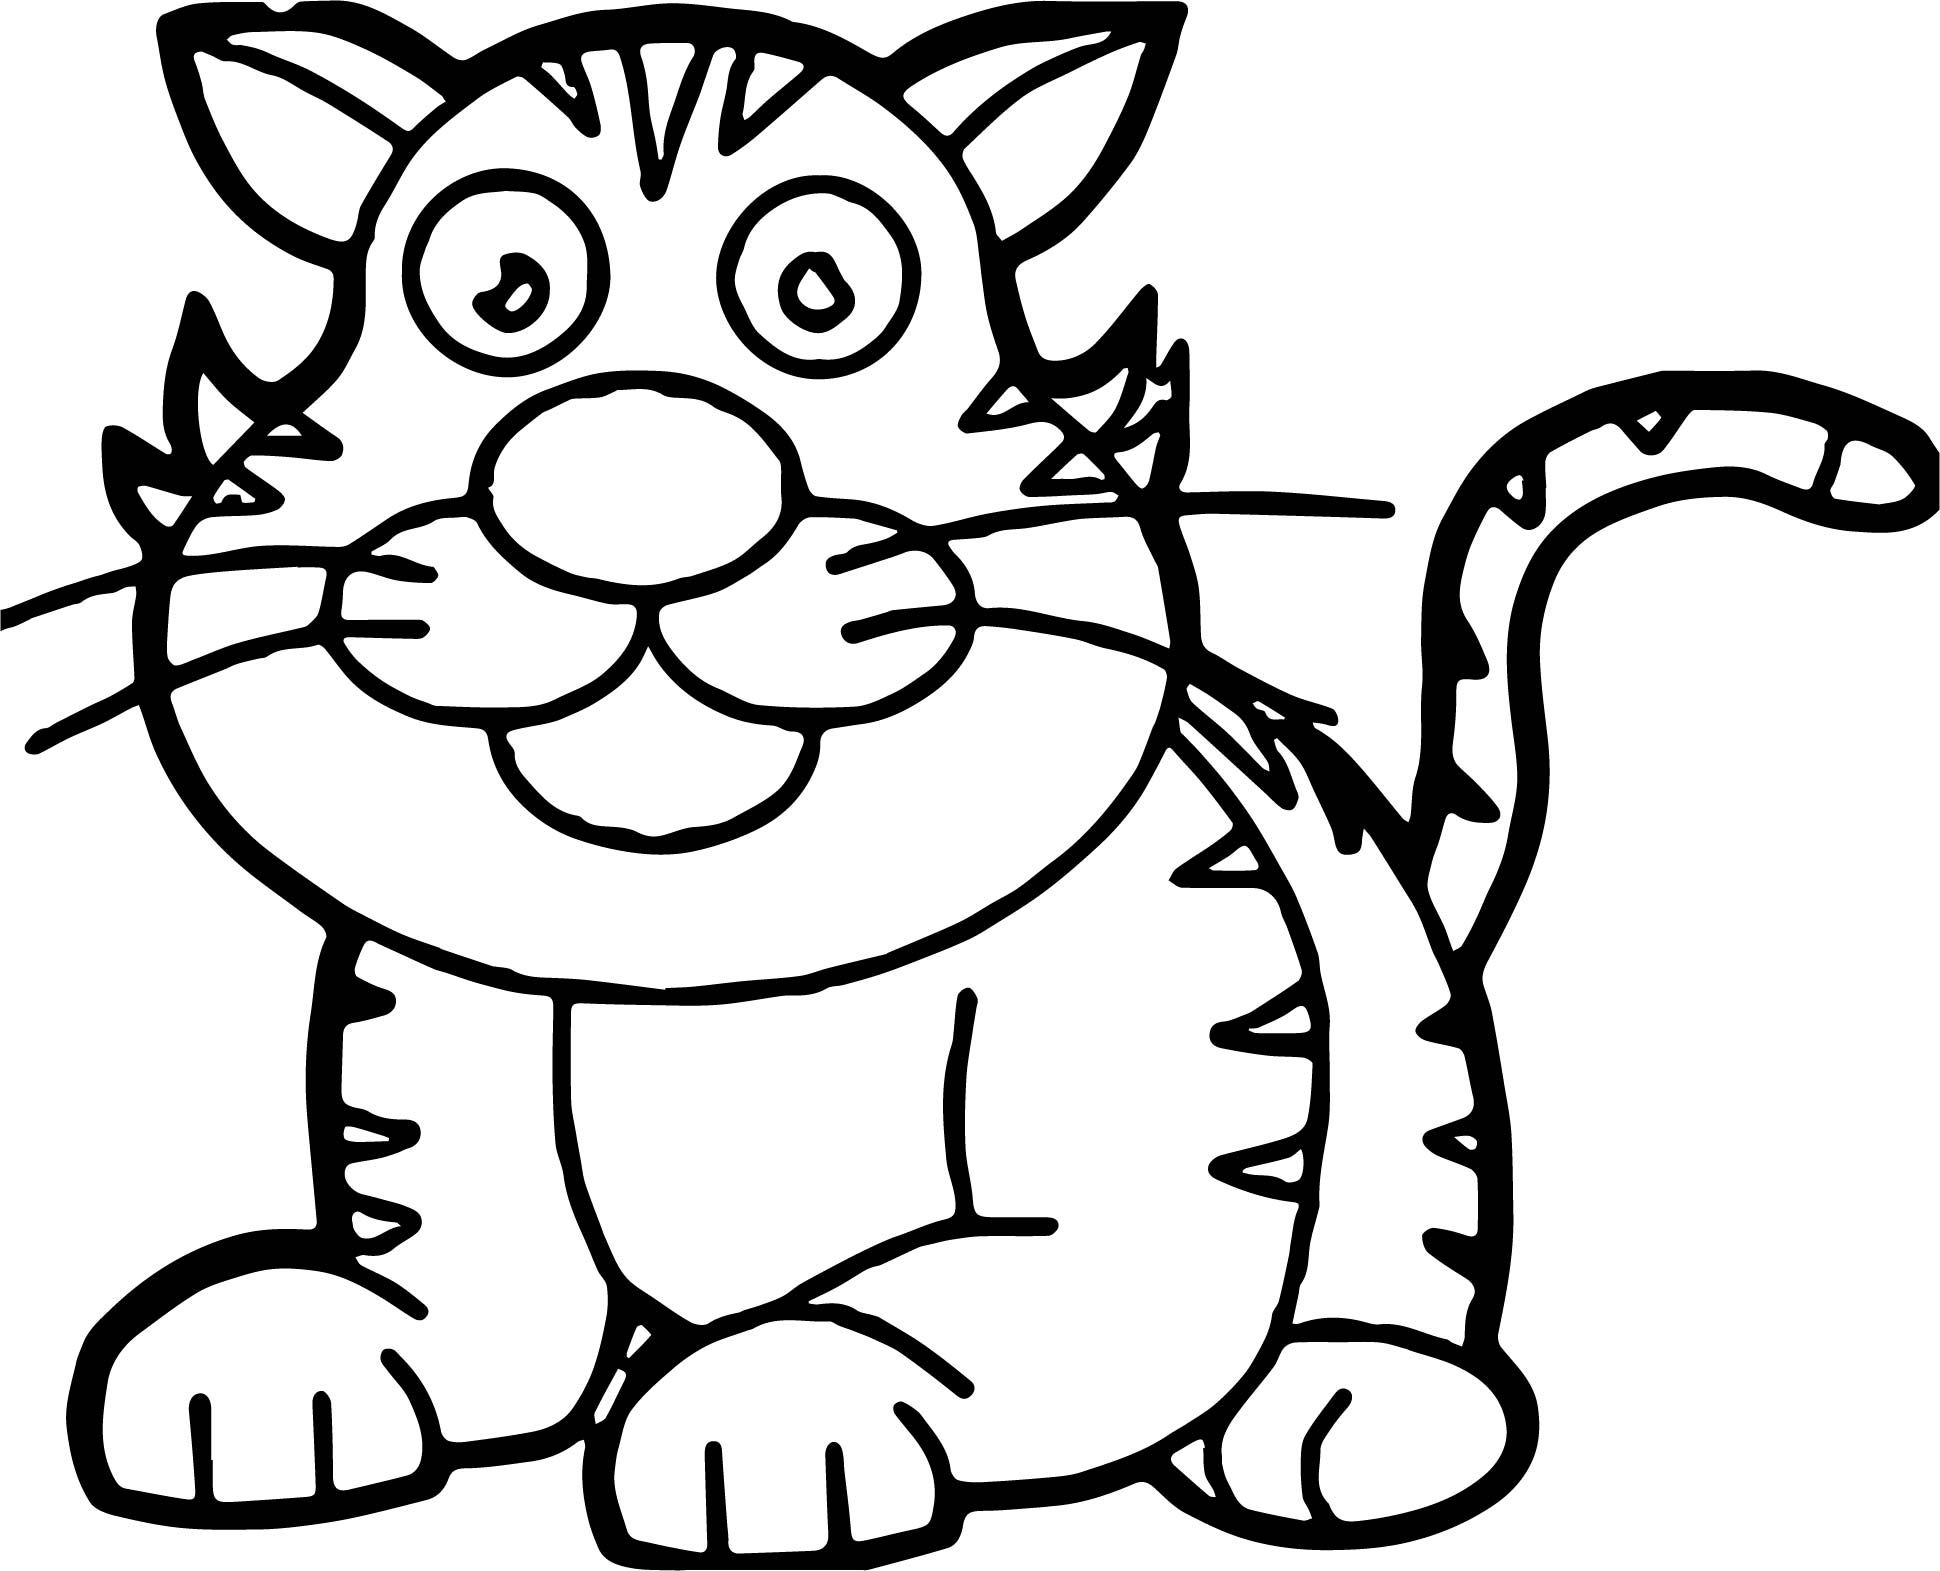 Staying Tiger Coloring Page